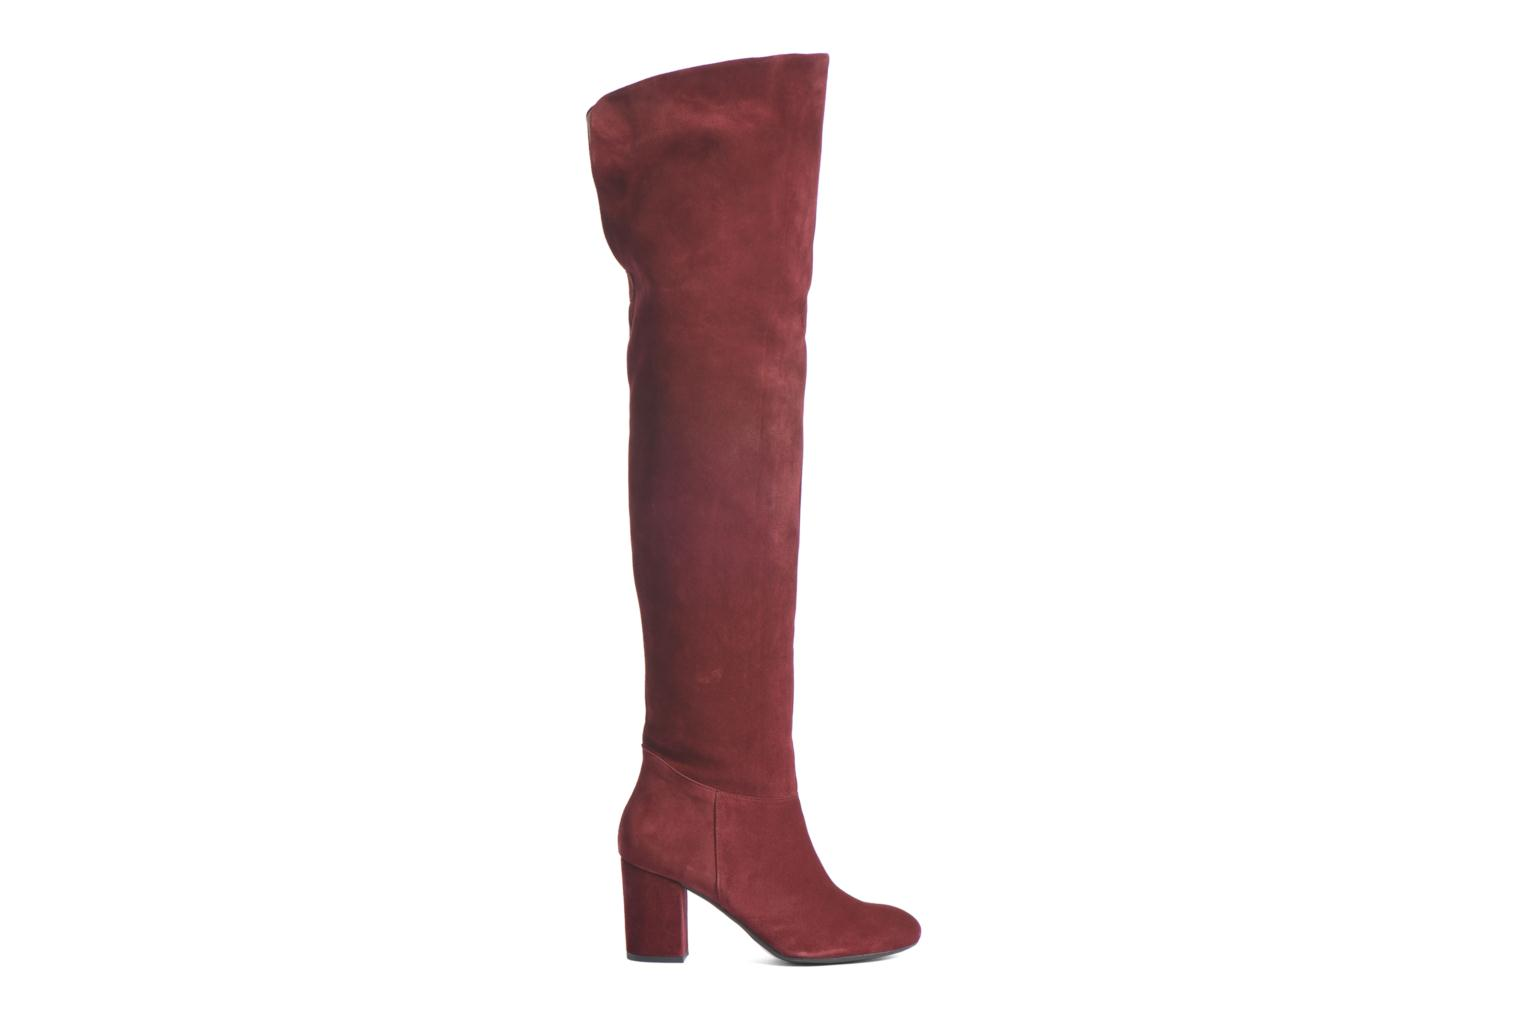 Marques Chaussure femme Made by SARENZA femme Boots Camp #13 Croute bordeaux yecla